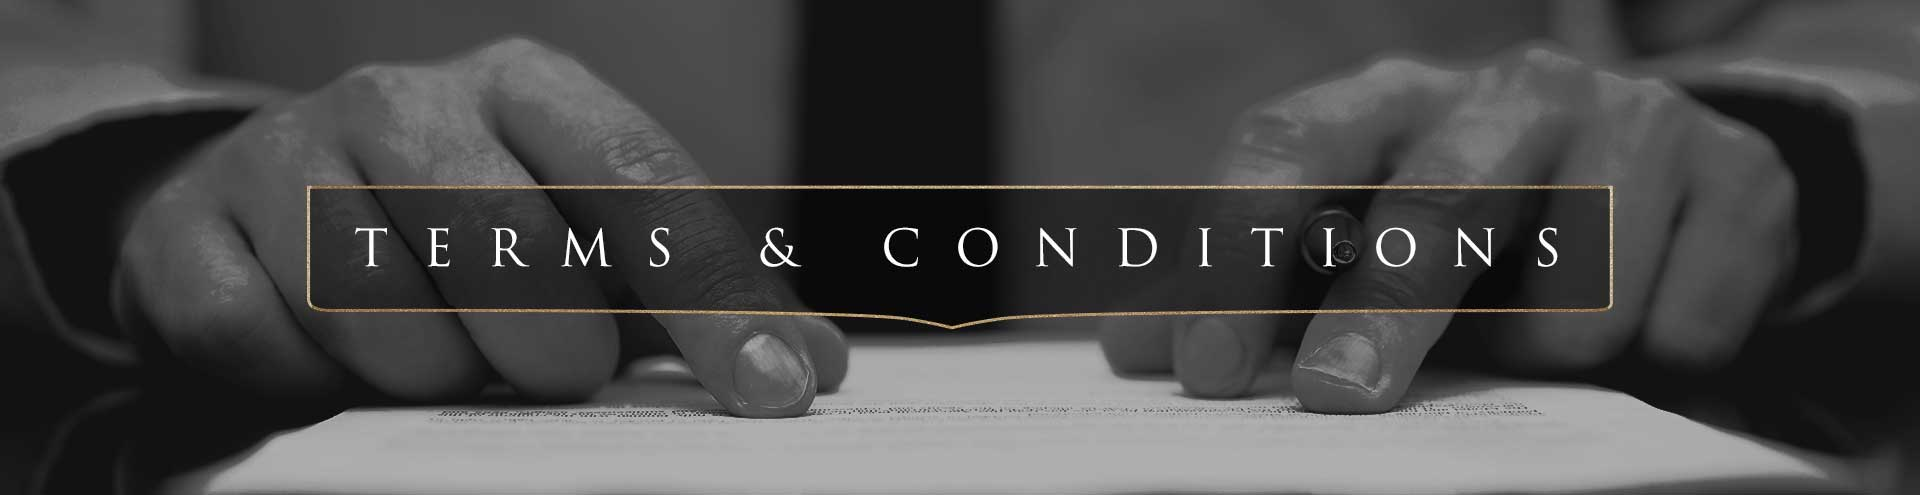 terms-and-condition-banner-vincitore-real-estate-development-llc